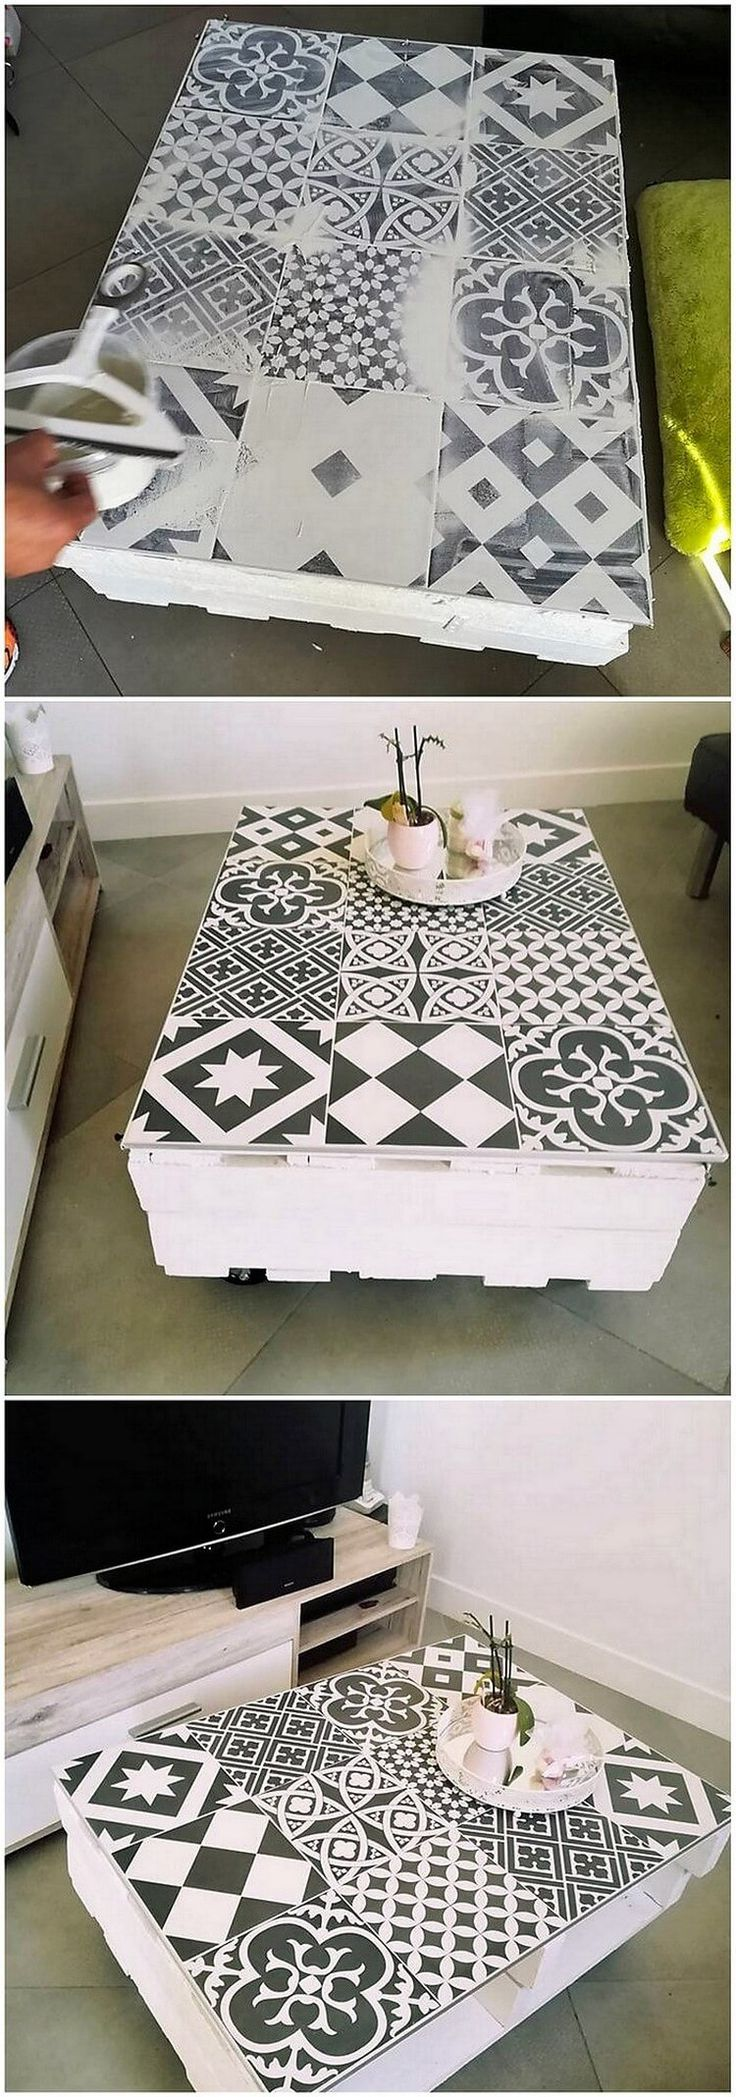 Beautiful table design of wood pallet is given out here in this image. This table is bottom shaped in structure view point where the top side of the table has been brilliant and best incorporated with the pattern stripes print work upholding.